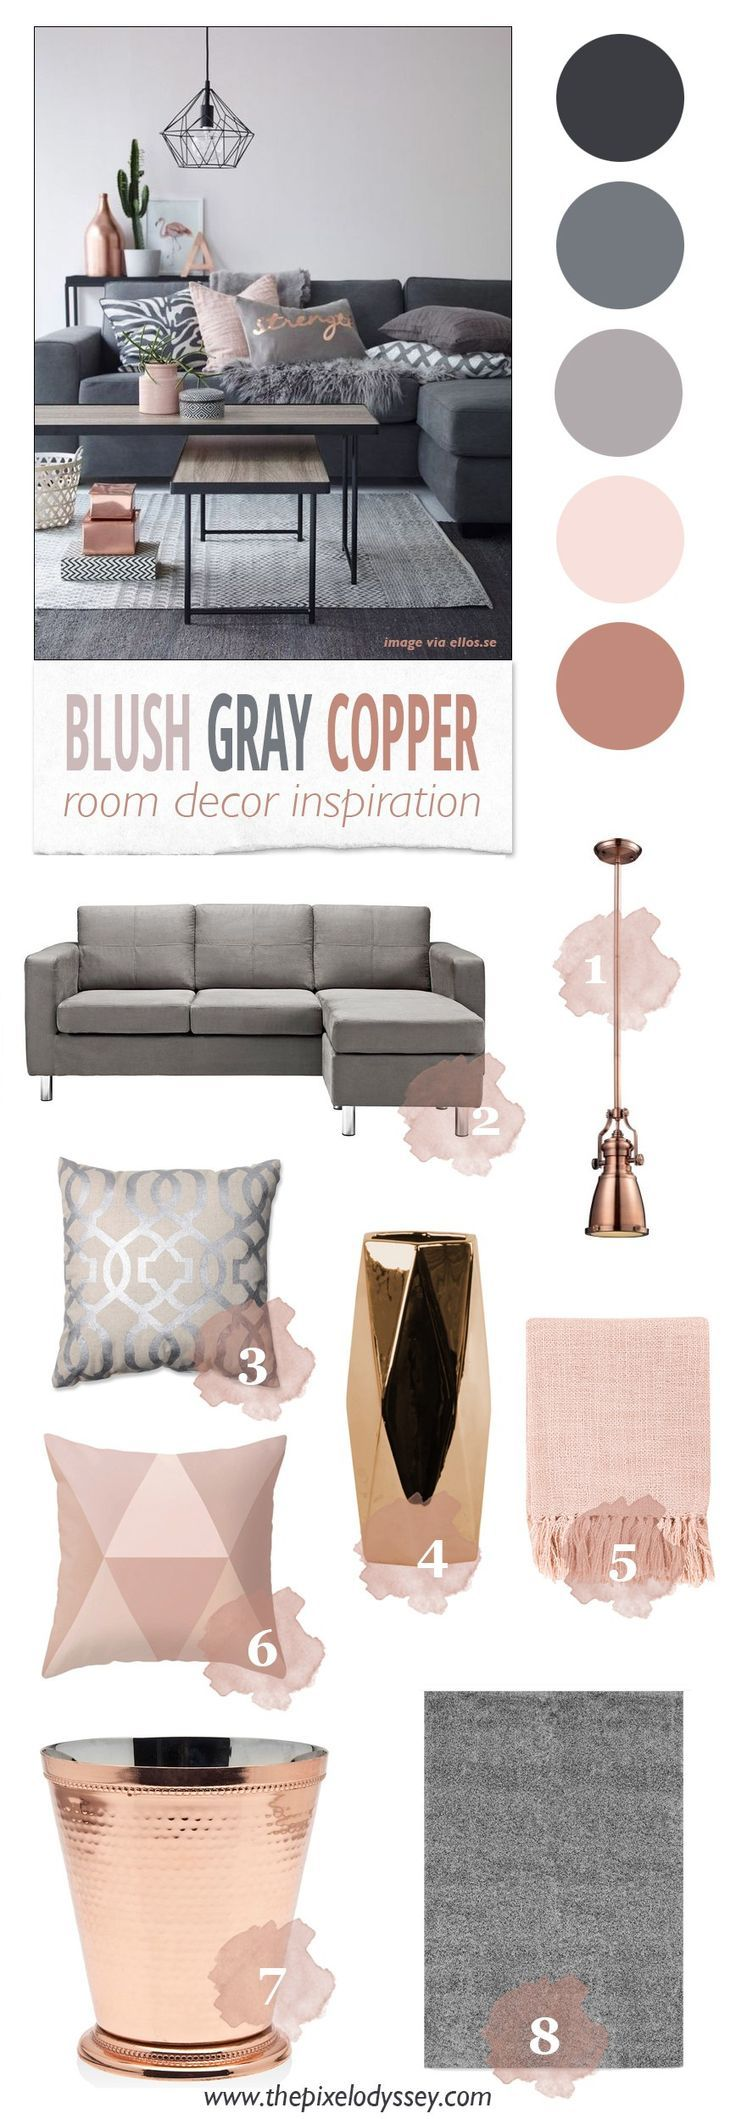 Blush Gray Copper Room Decor Inspiration